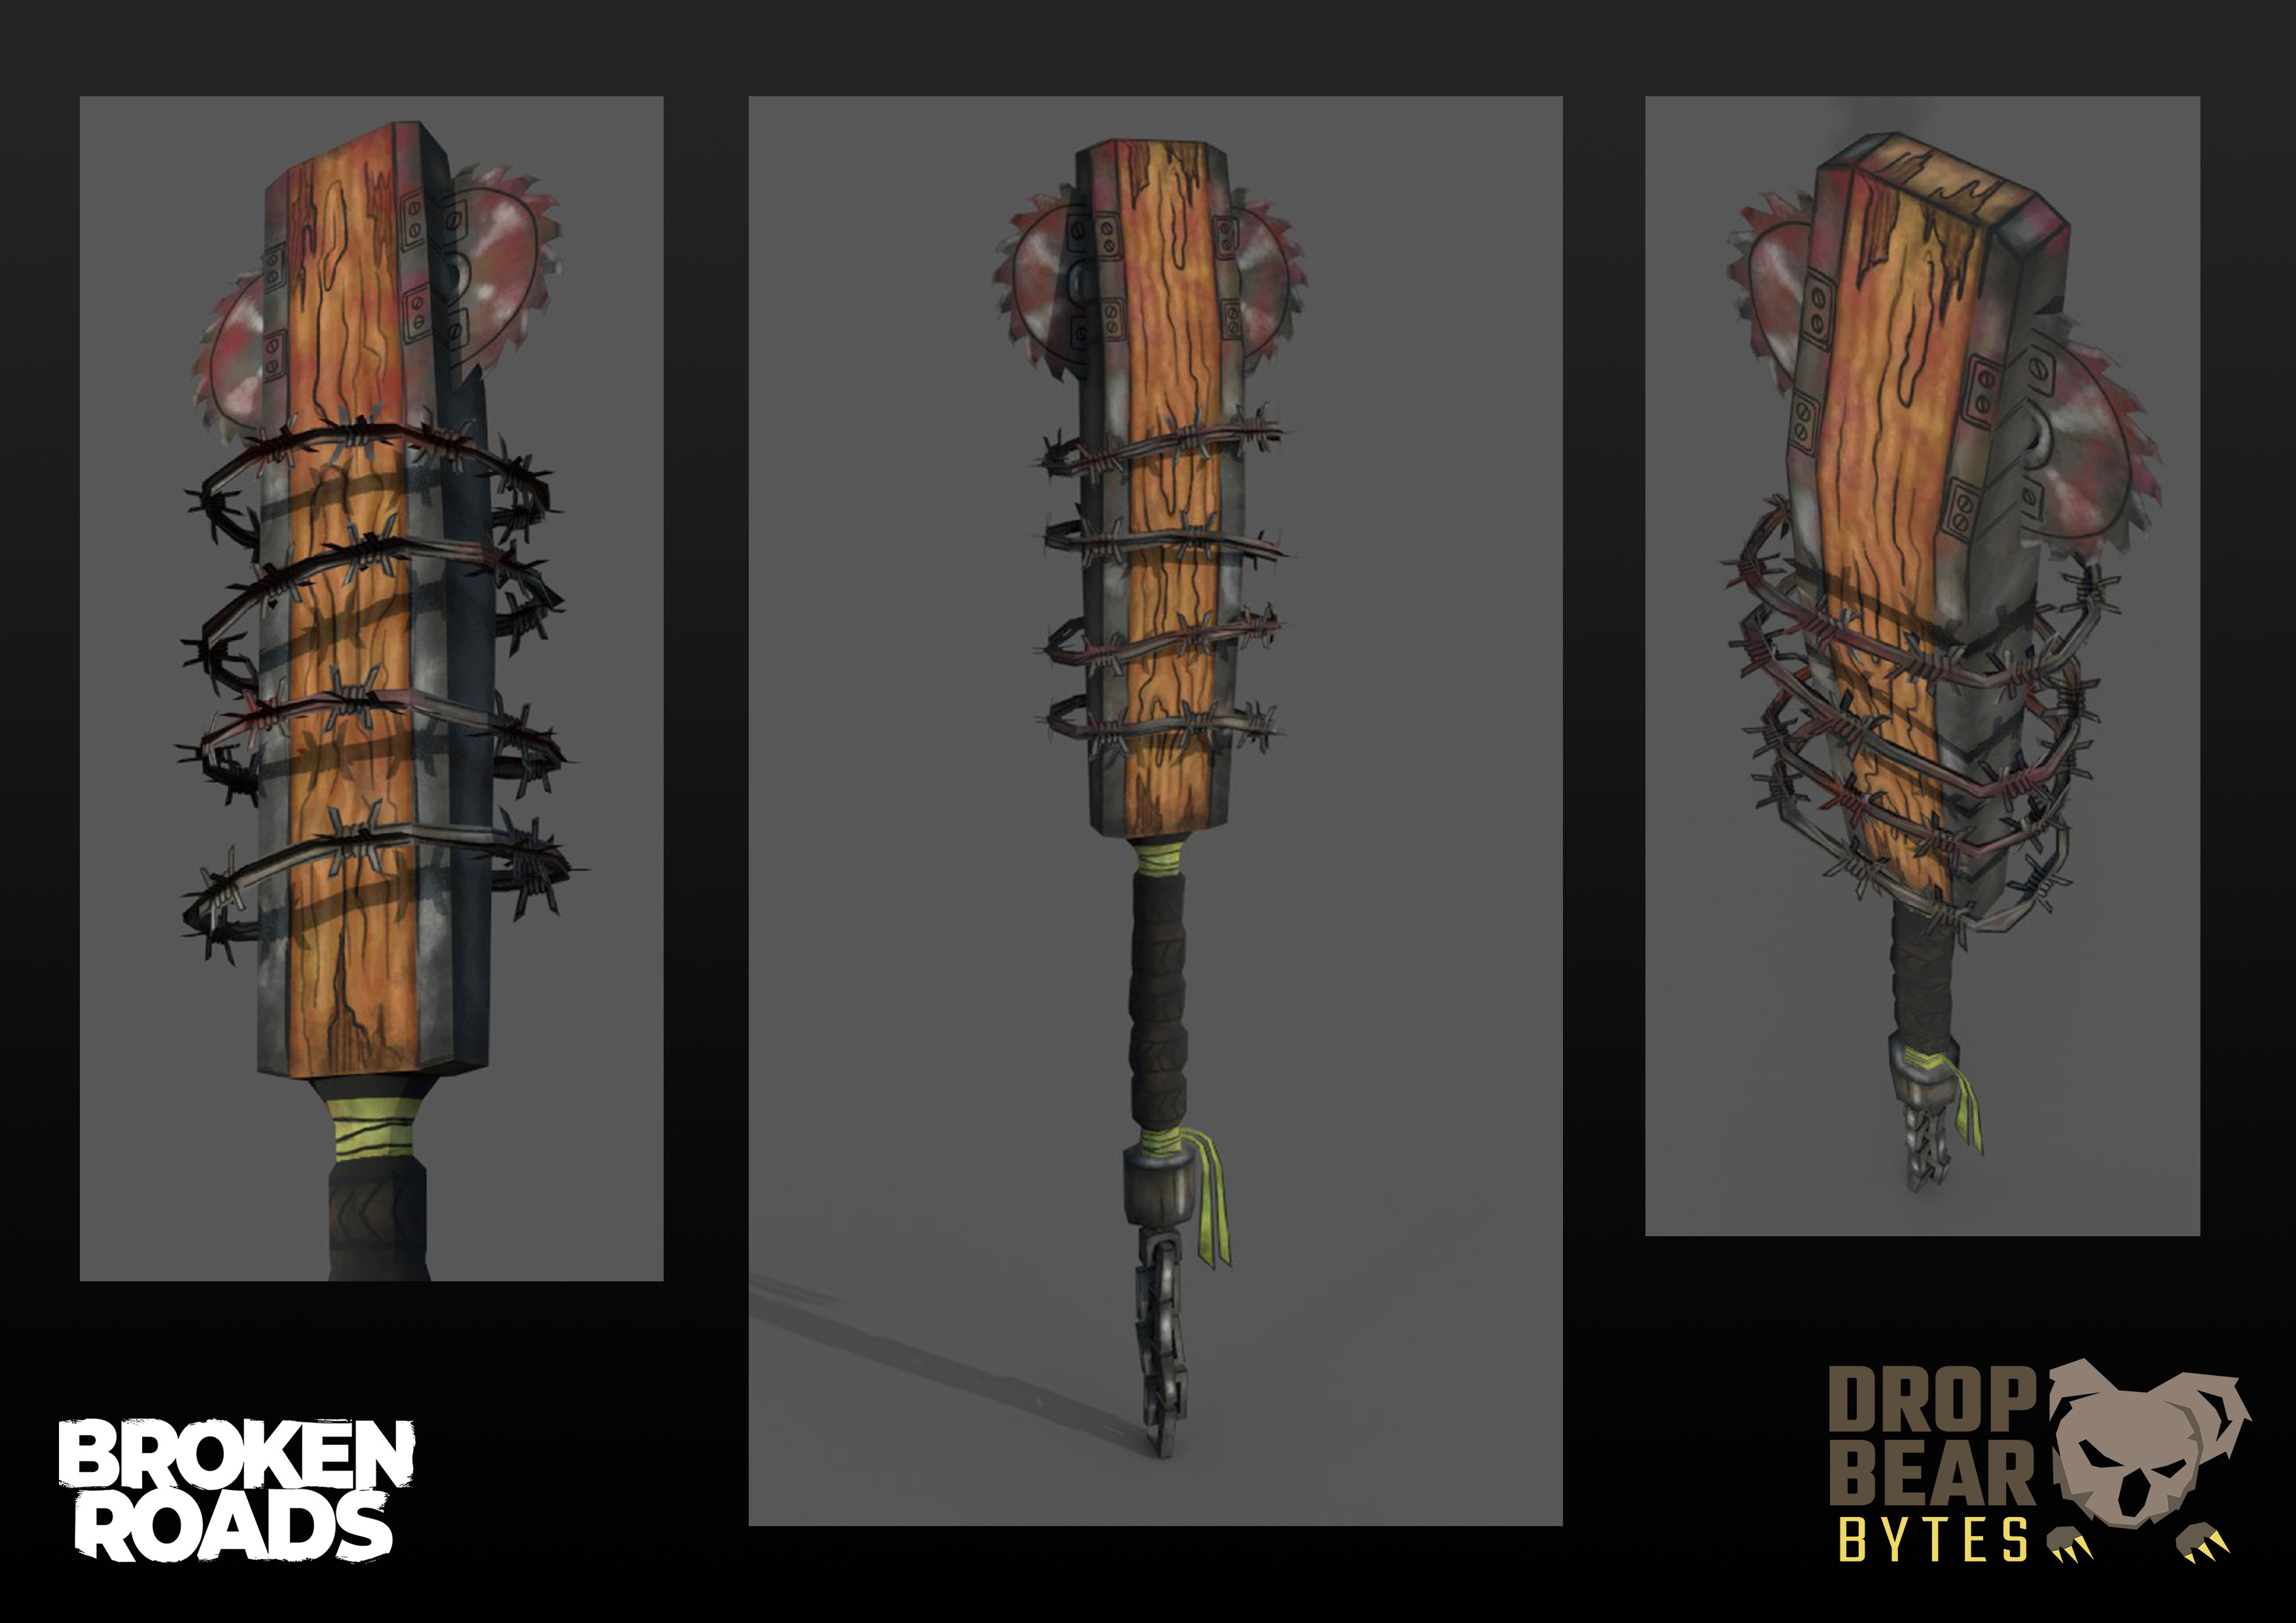 3D model and textures